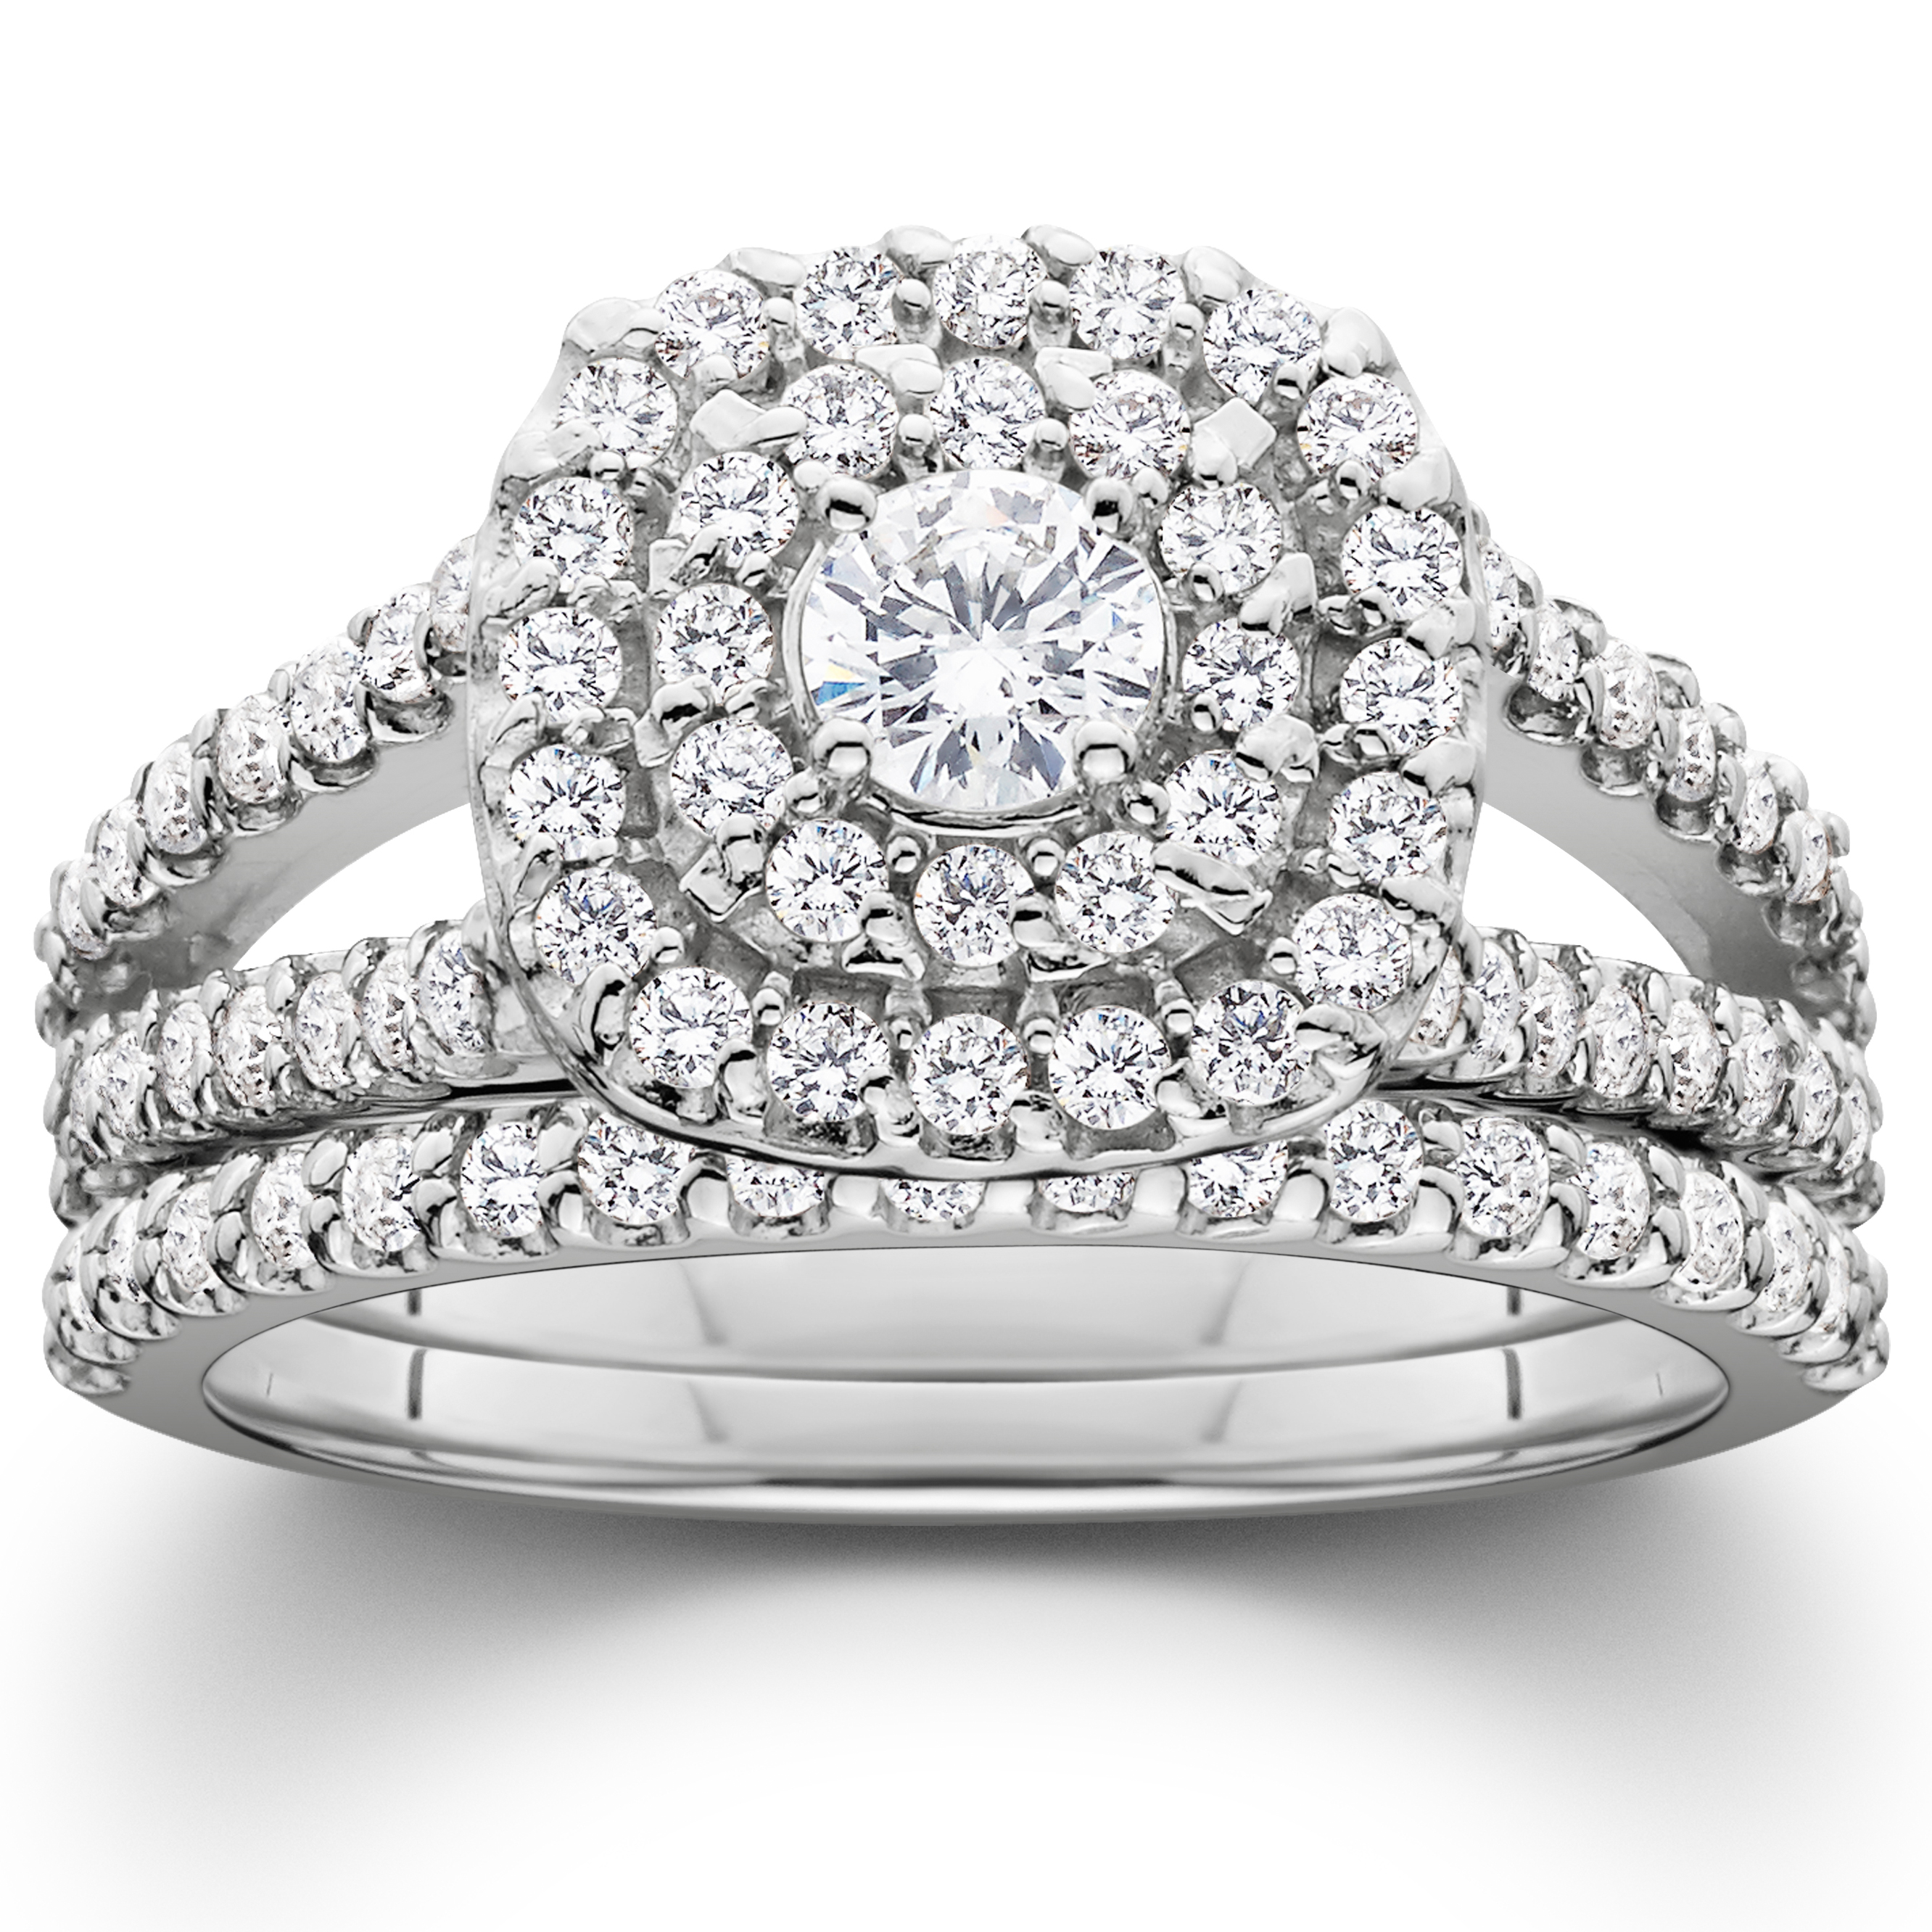 1 1 10ct Cushion Halo Solitaire Diamond Engagement Wedding Ring